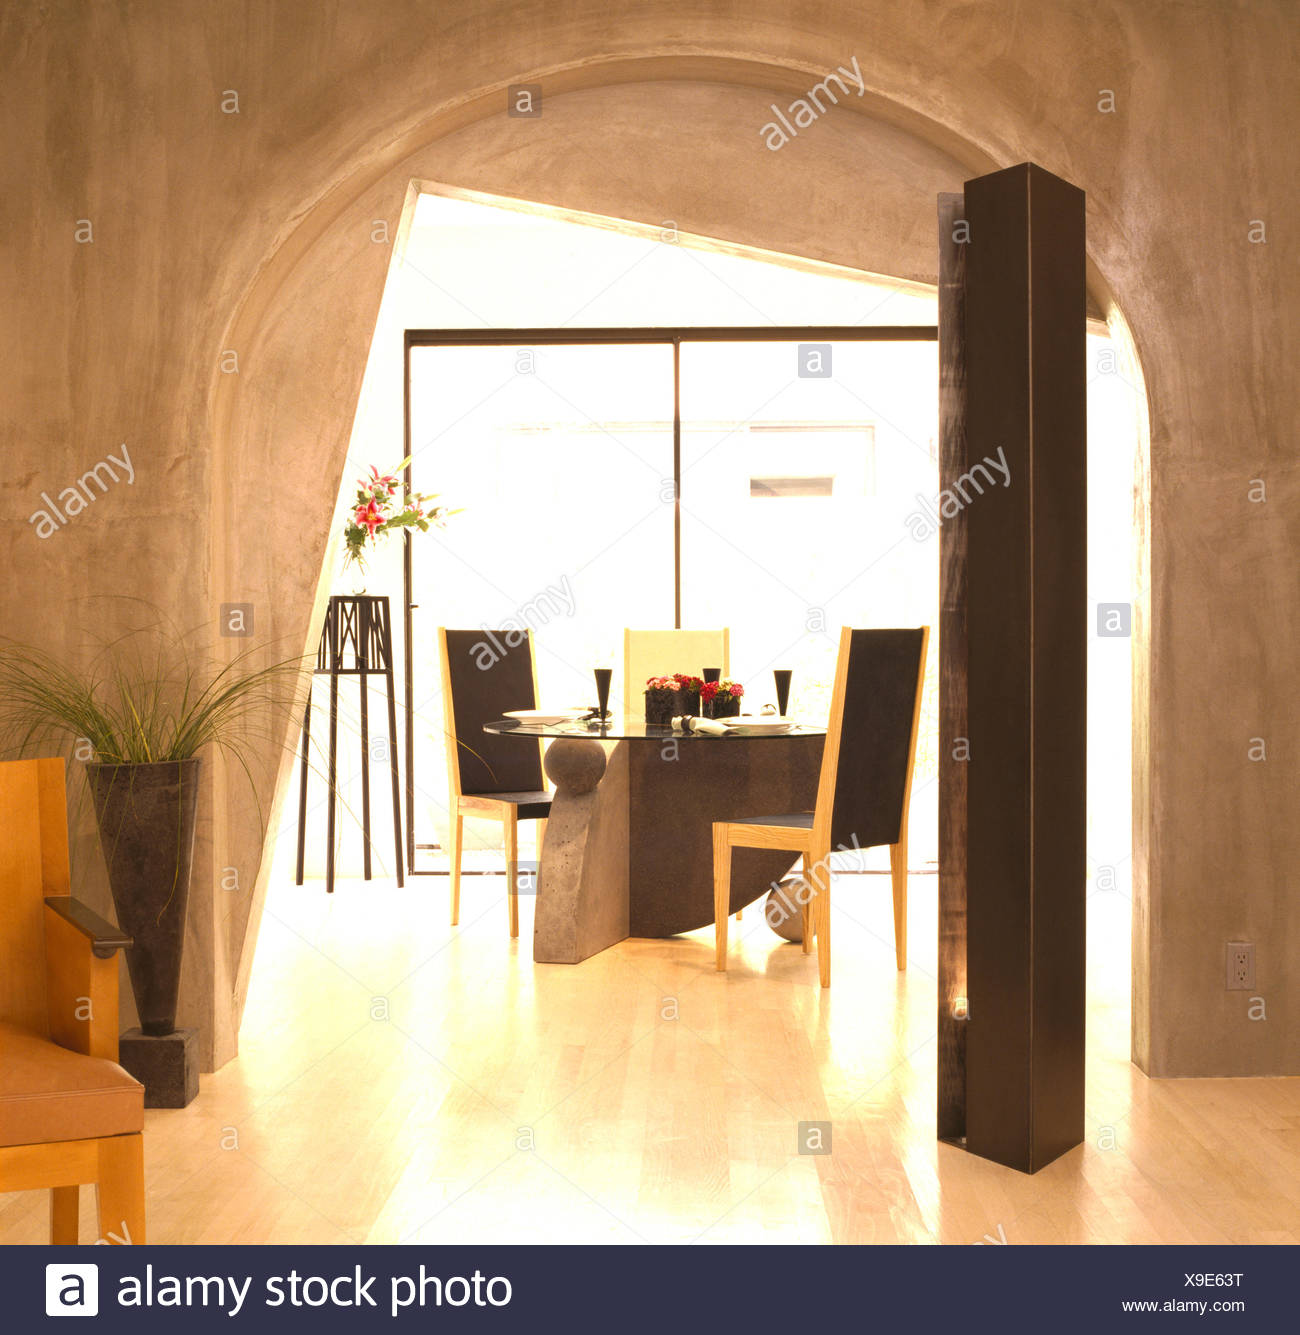 Concrete walls and polished floor in dining area with arched doorway and tall speaker in late eighties Californian house - Stock Image